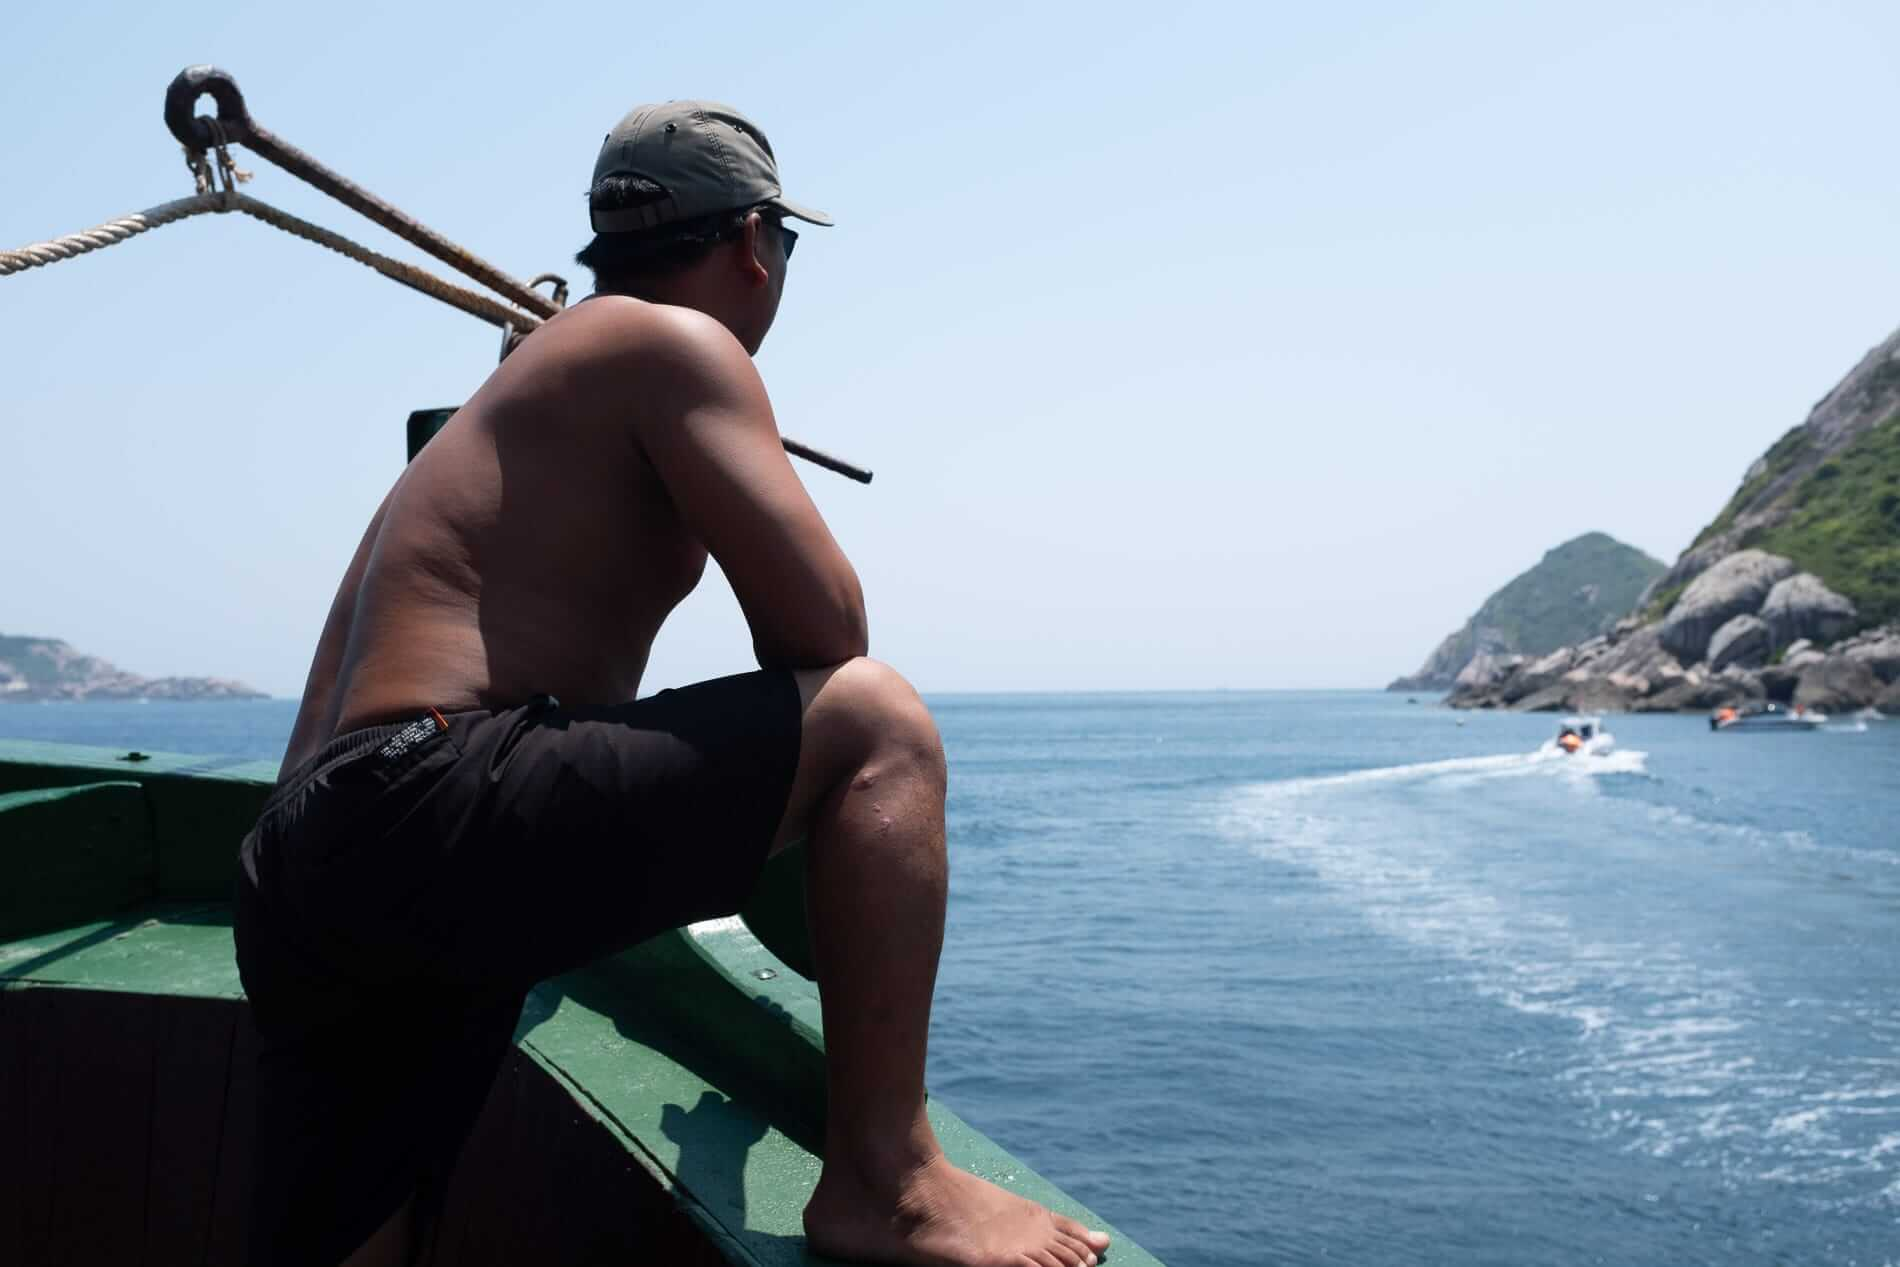 A crewman on the diving boat - Cham Island Accommodation